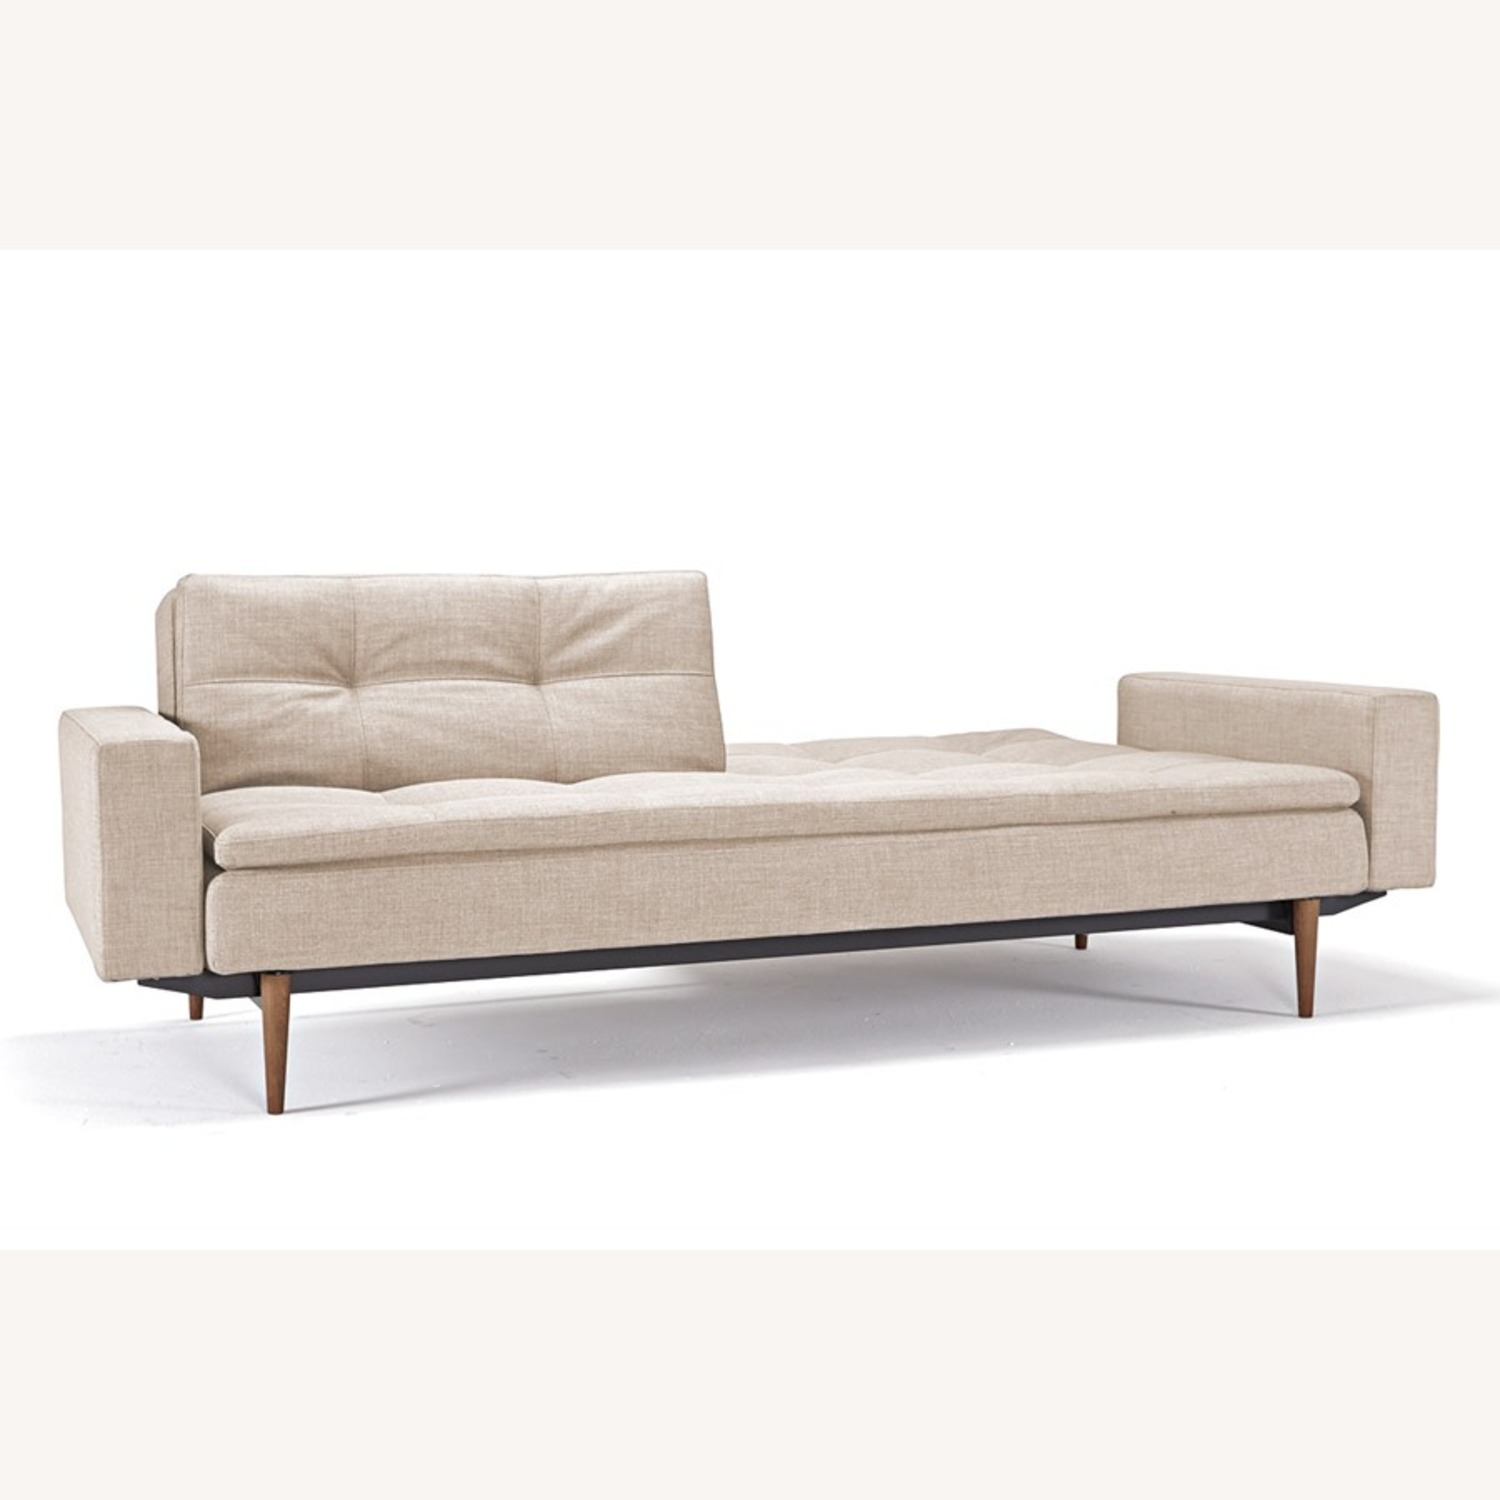 Dublexo Styletto Sofa with Arms - image-2